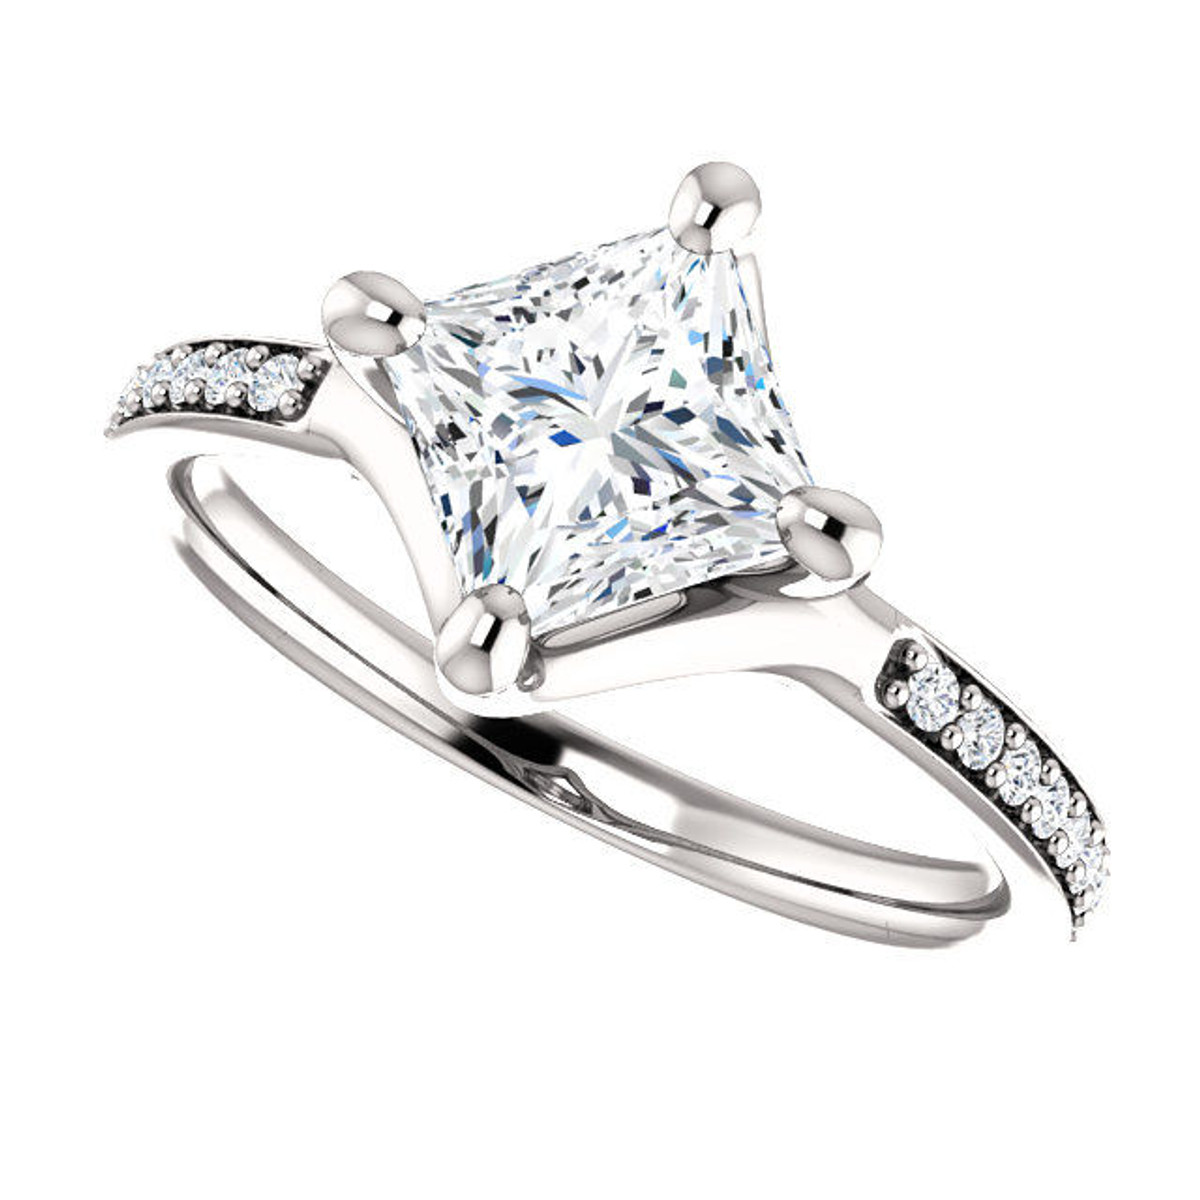 White Gold Princess Cut Diamond Accent Engagement Ring